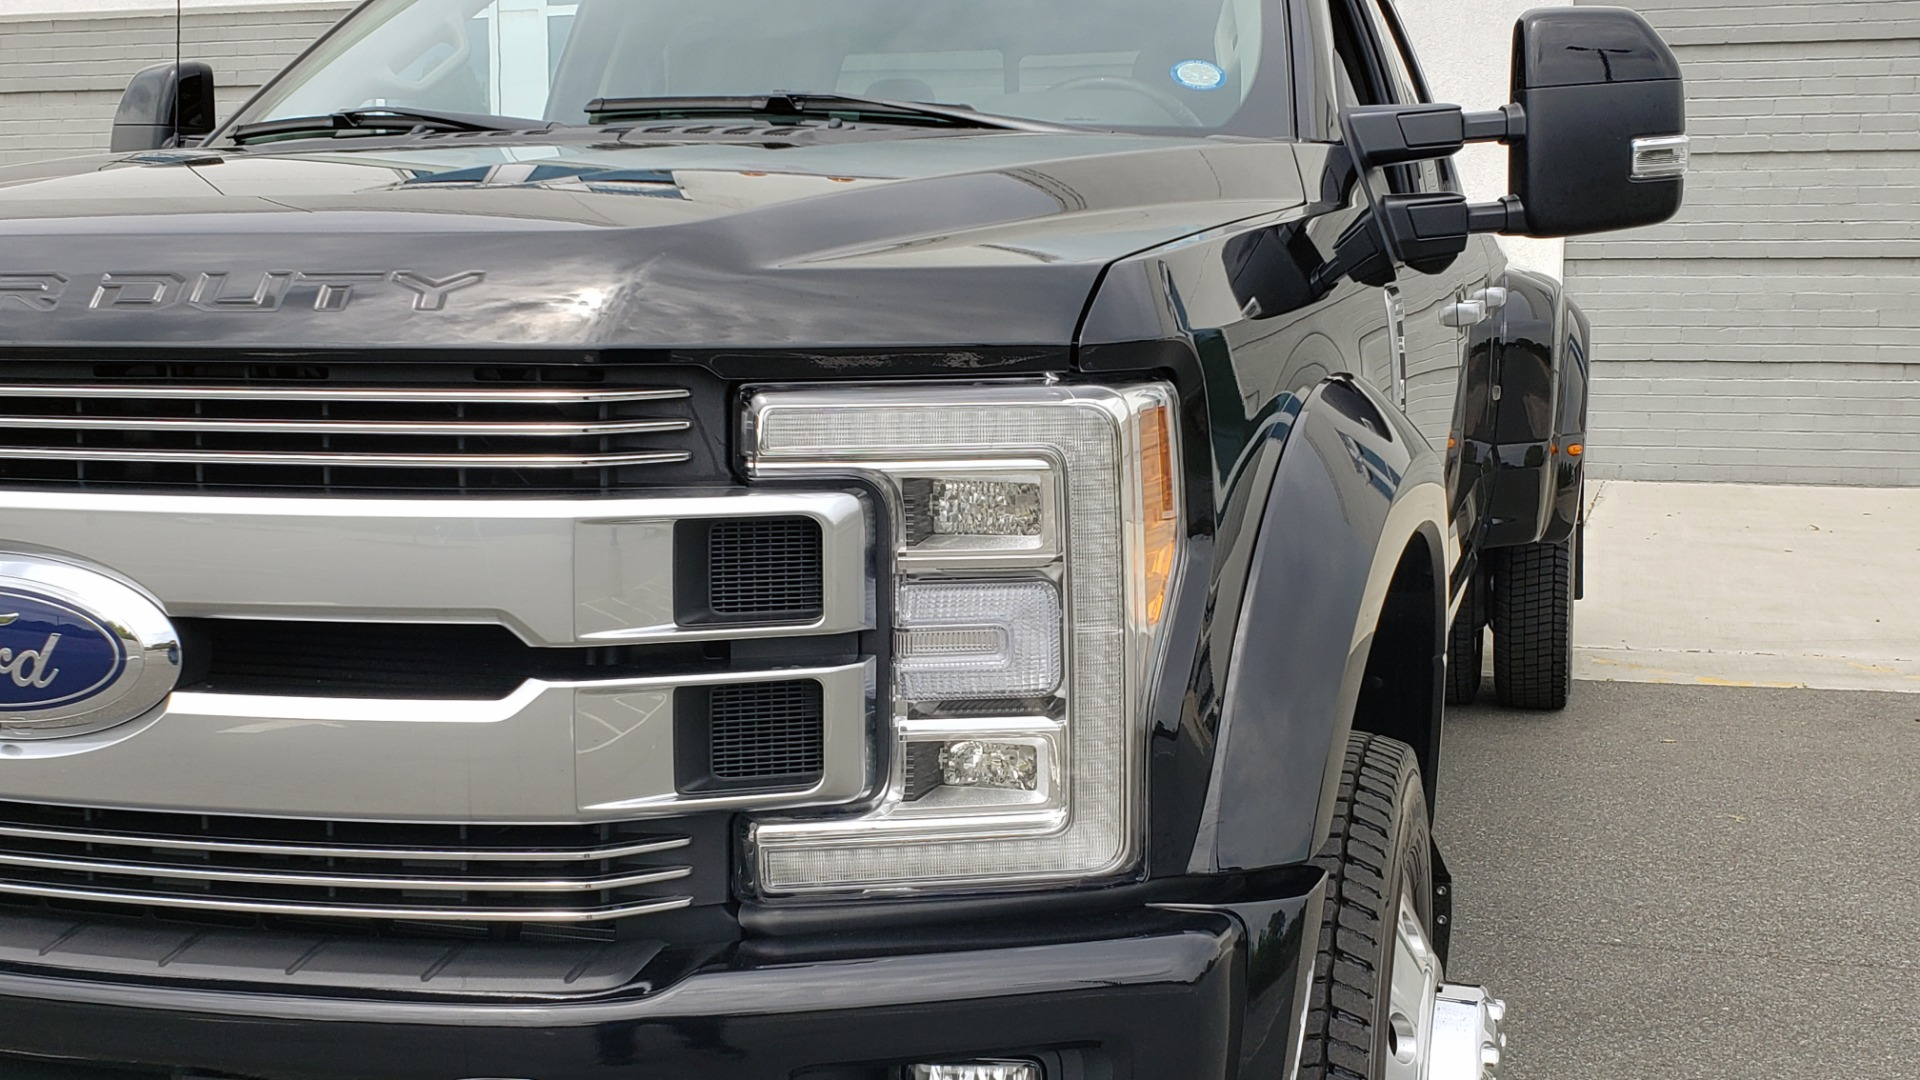 Used 2019 Ford SUPER DUTY F-450 DRW LIMITED / 4X4 / CREWCAB 176IN WB / LOADED / LOW MILES for sale Sold at Formula Imports in Charlotte NC 28227 27